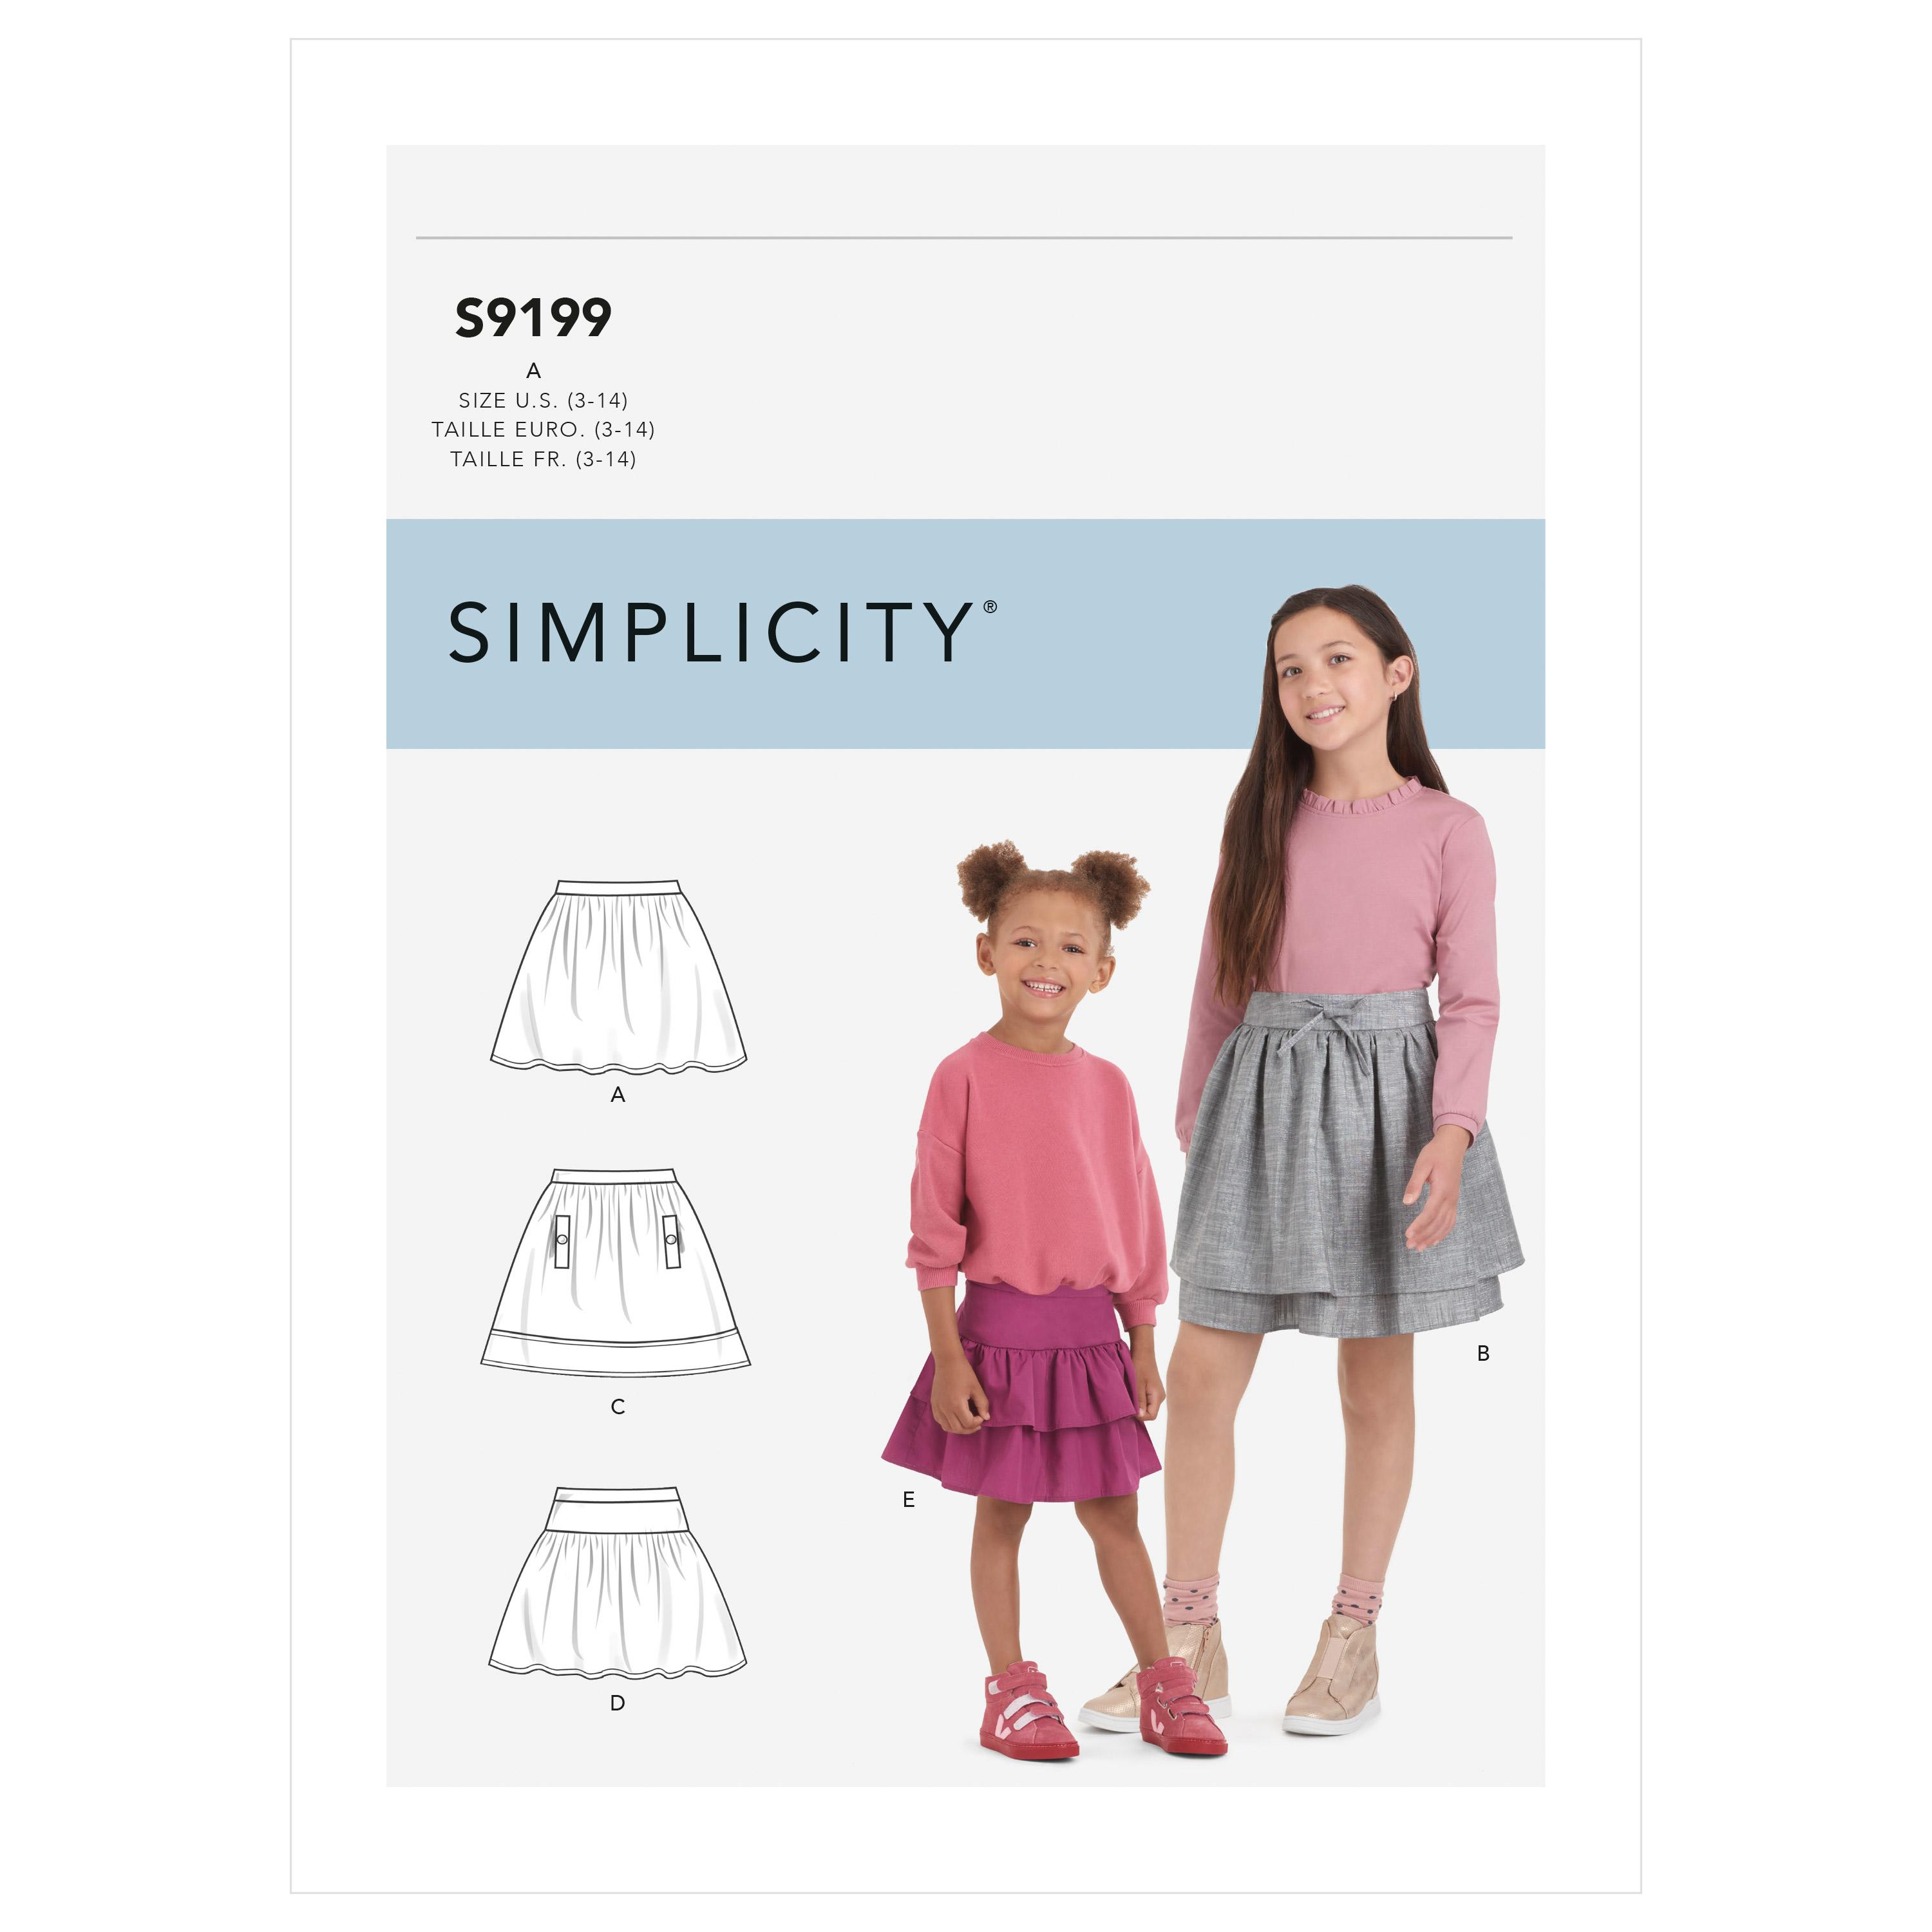 Simplicity Sewing Pattern S9199 Children's & Girls' Skirts